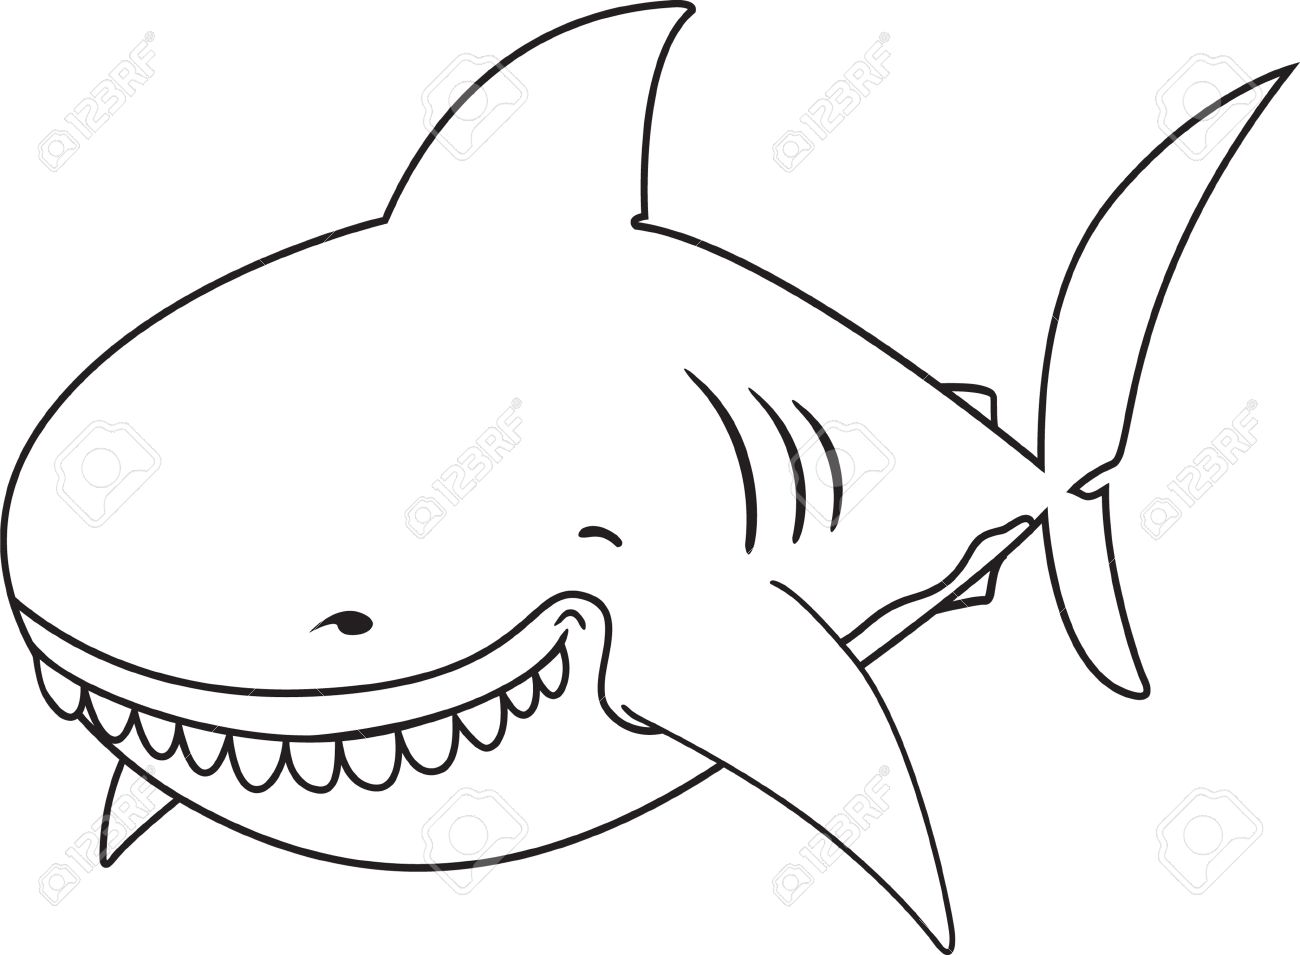 Cute Funny Looking Great White Shark Coloring Book Stock Vector